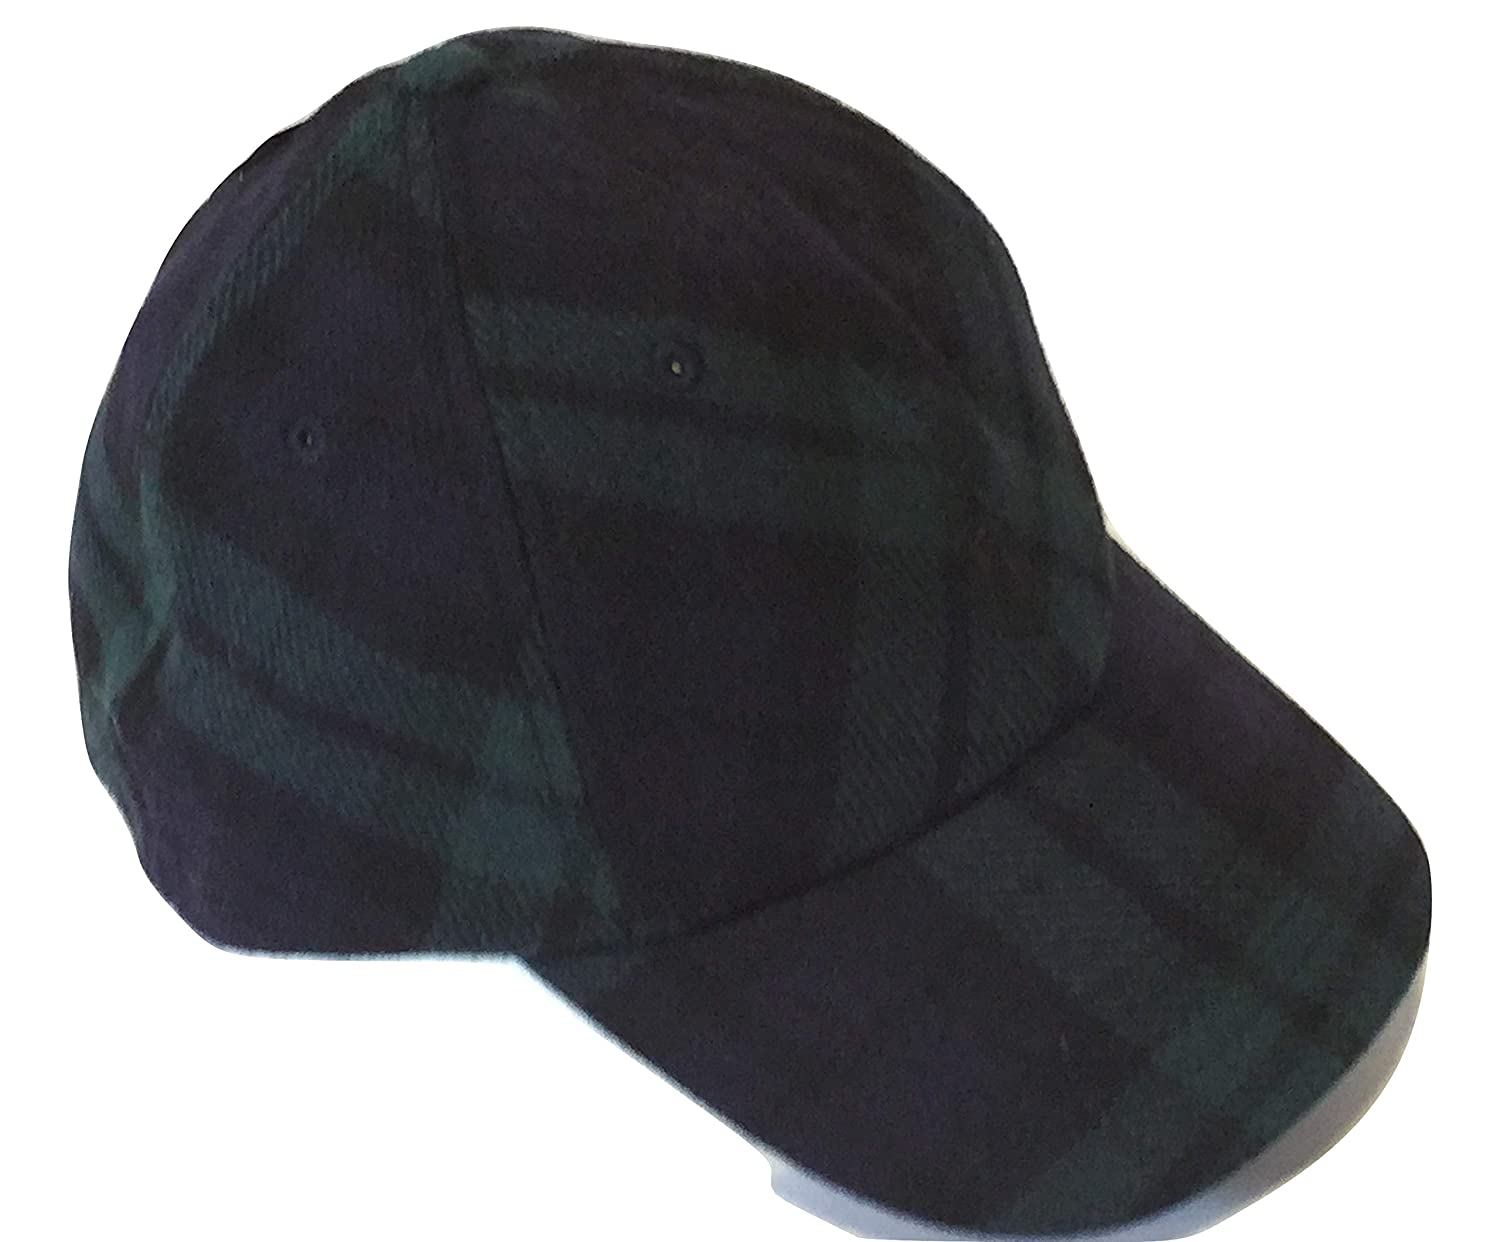 8015046a4 Ralph Lauren Polo Men s Wool Baseball Cap Blackwatch Plaid Navy Blue at  Amazon Men s Clothing store